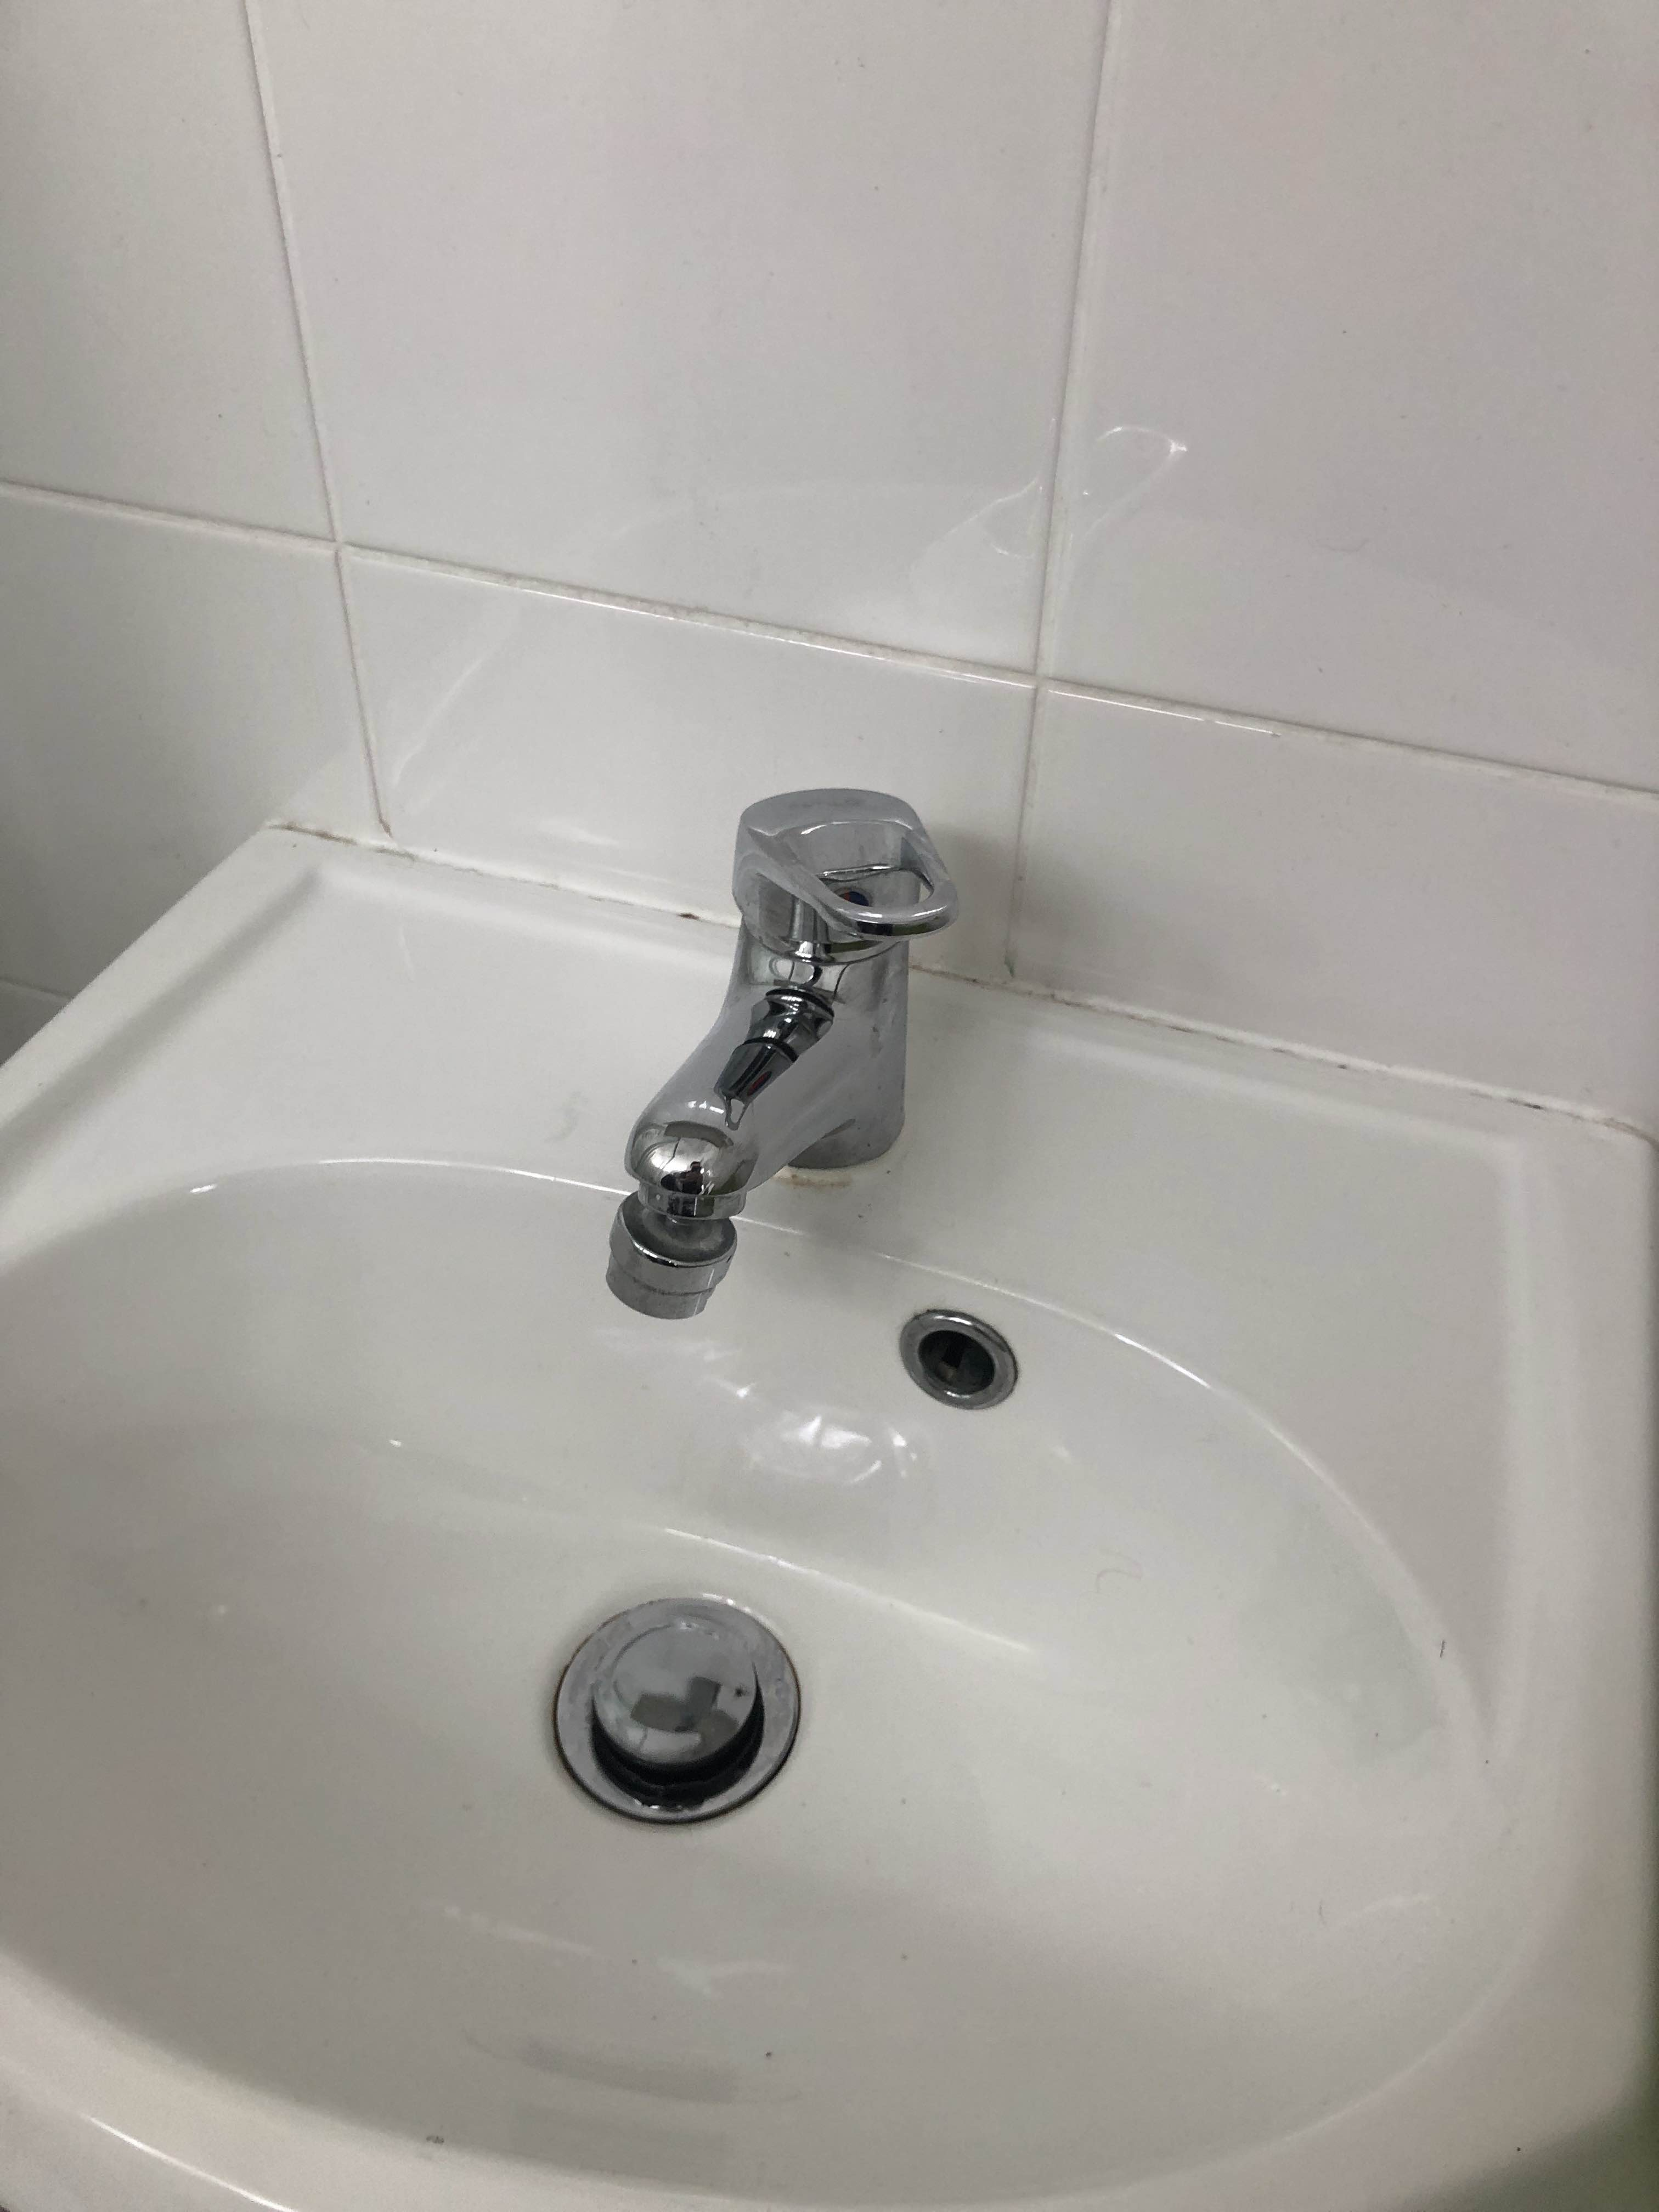 Leaking Taps and Toilet Repairs at Maribyrnong By P.A.D Plumbing & Maintenance Pty Ltd via i4Tradies